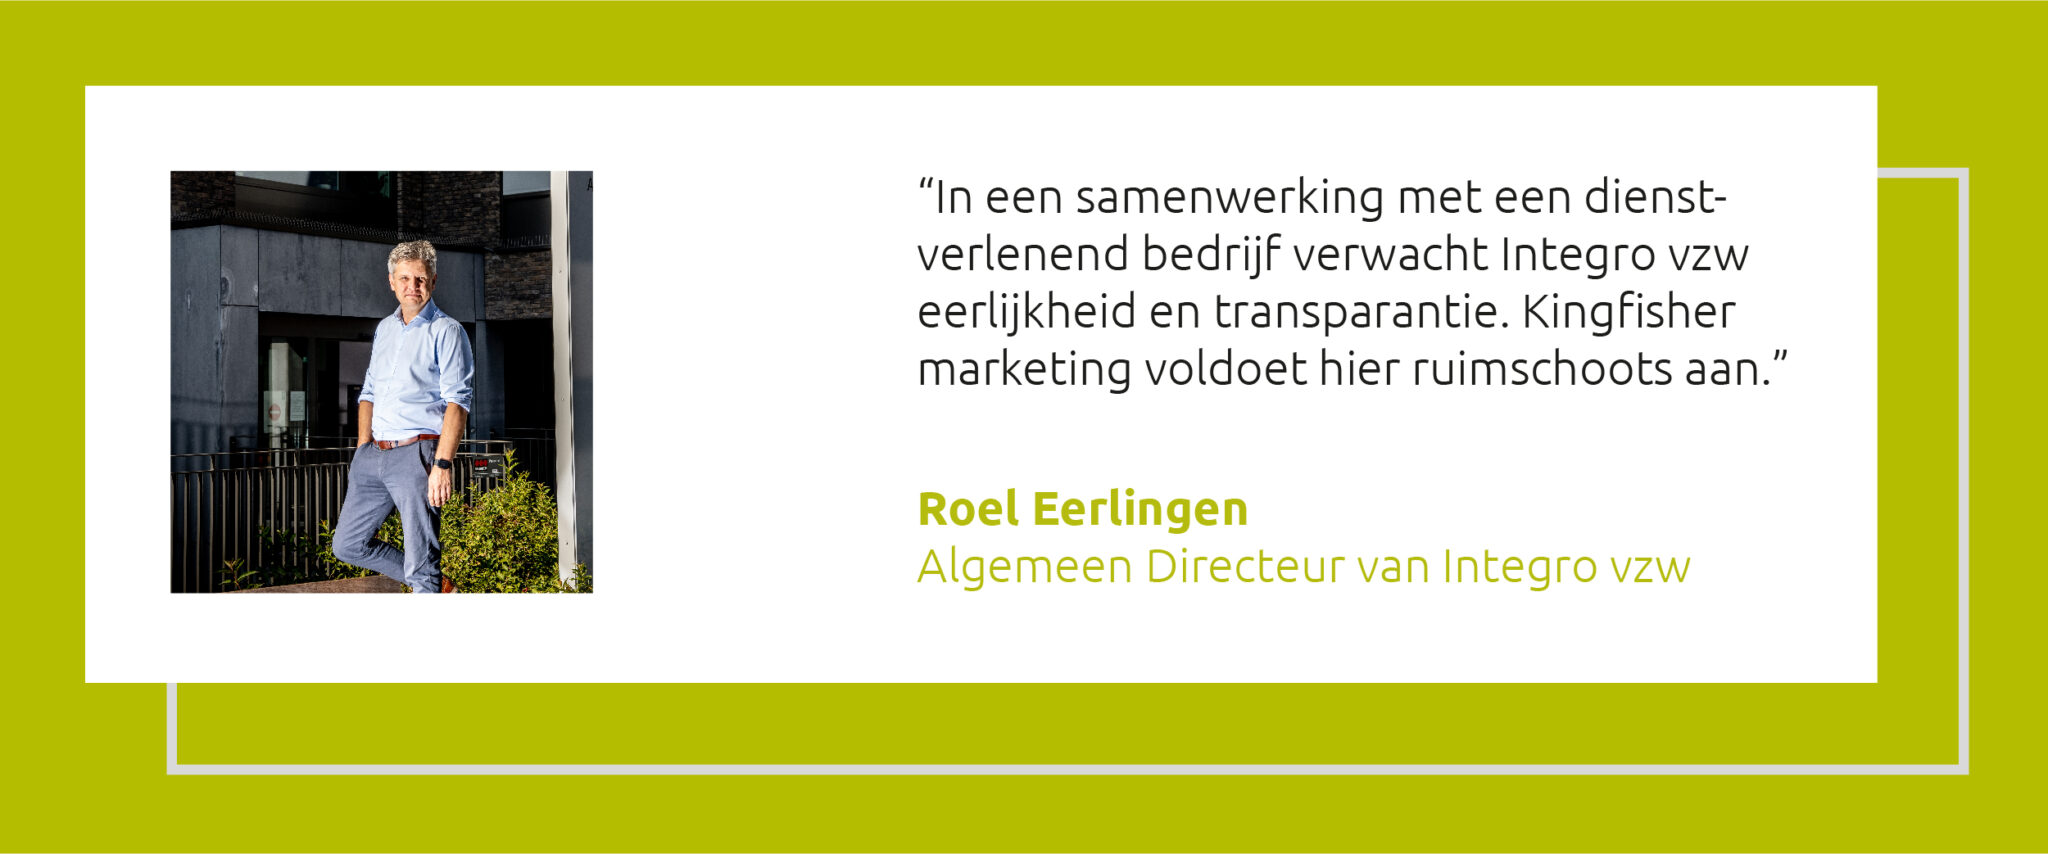 Quote Roel Eerlingen Integro vzw